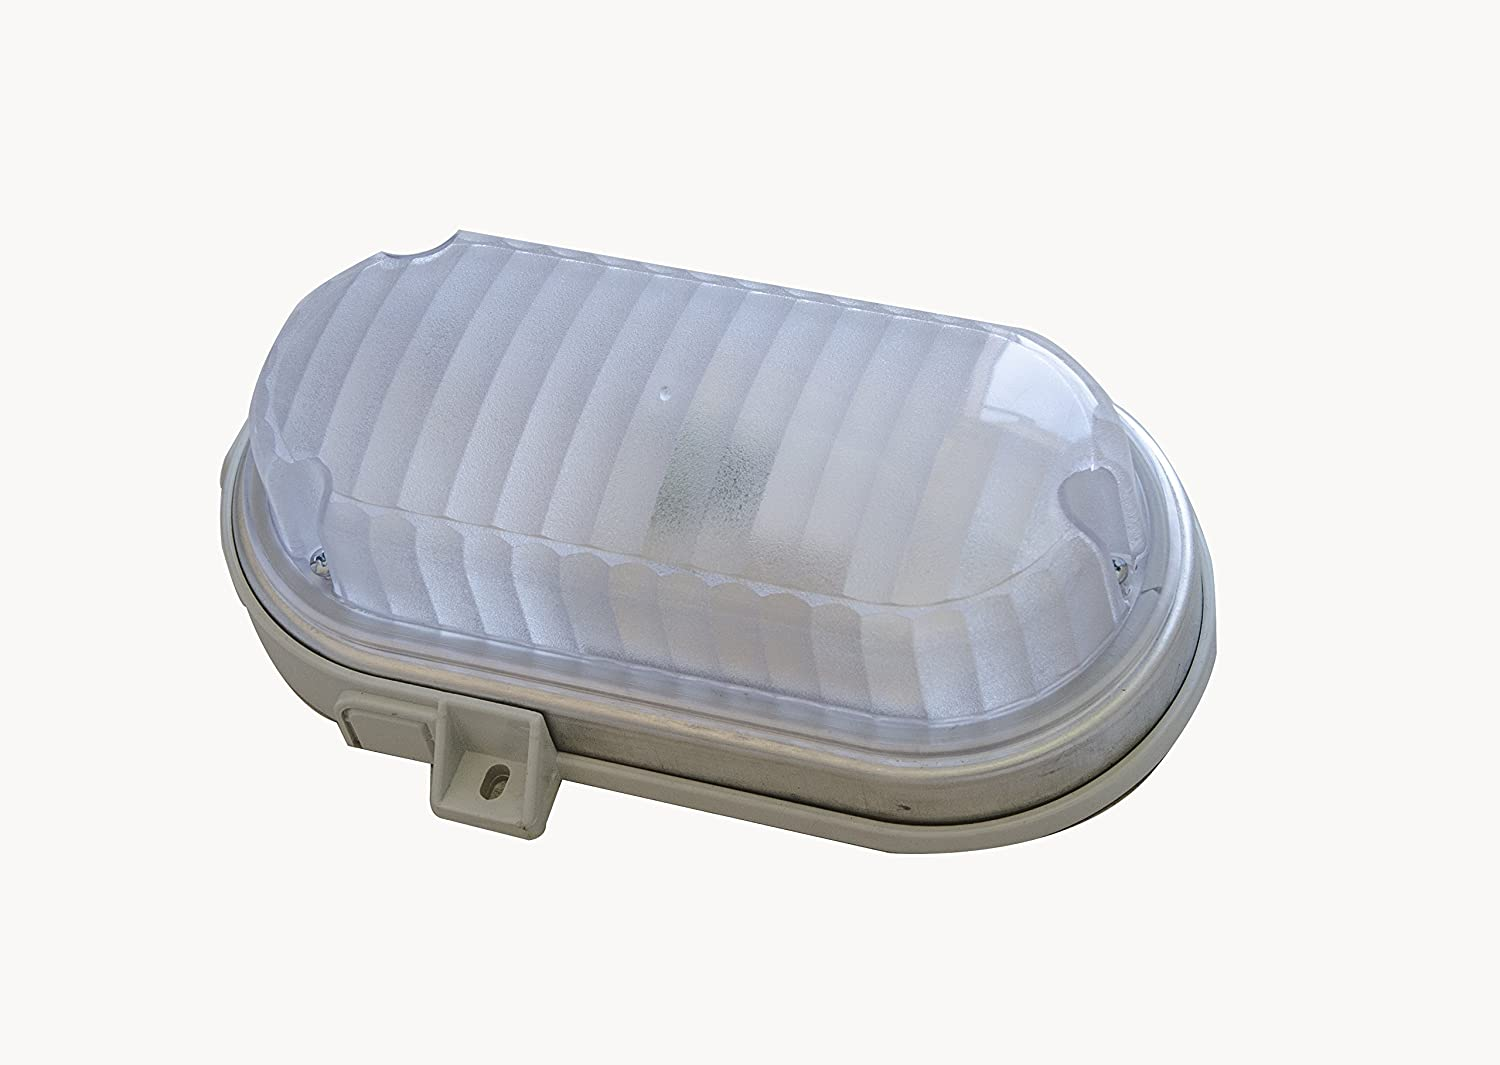 Rittal SK3237.124 TopTherm Enclosure Axial Cooling Exhaust Fan Filter 24VDC